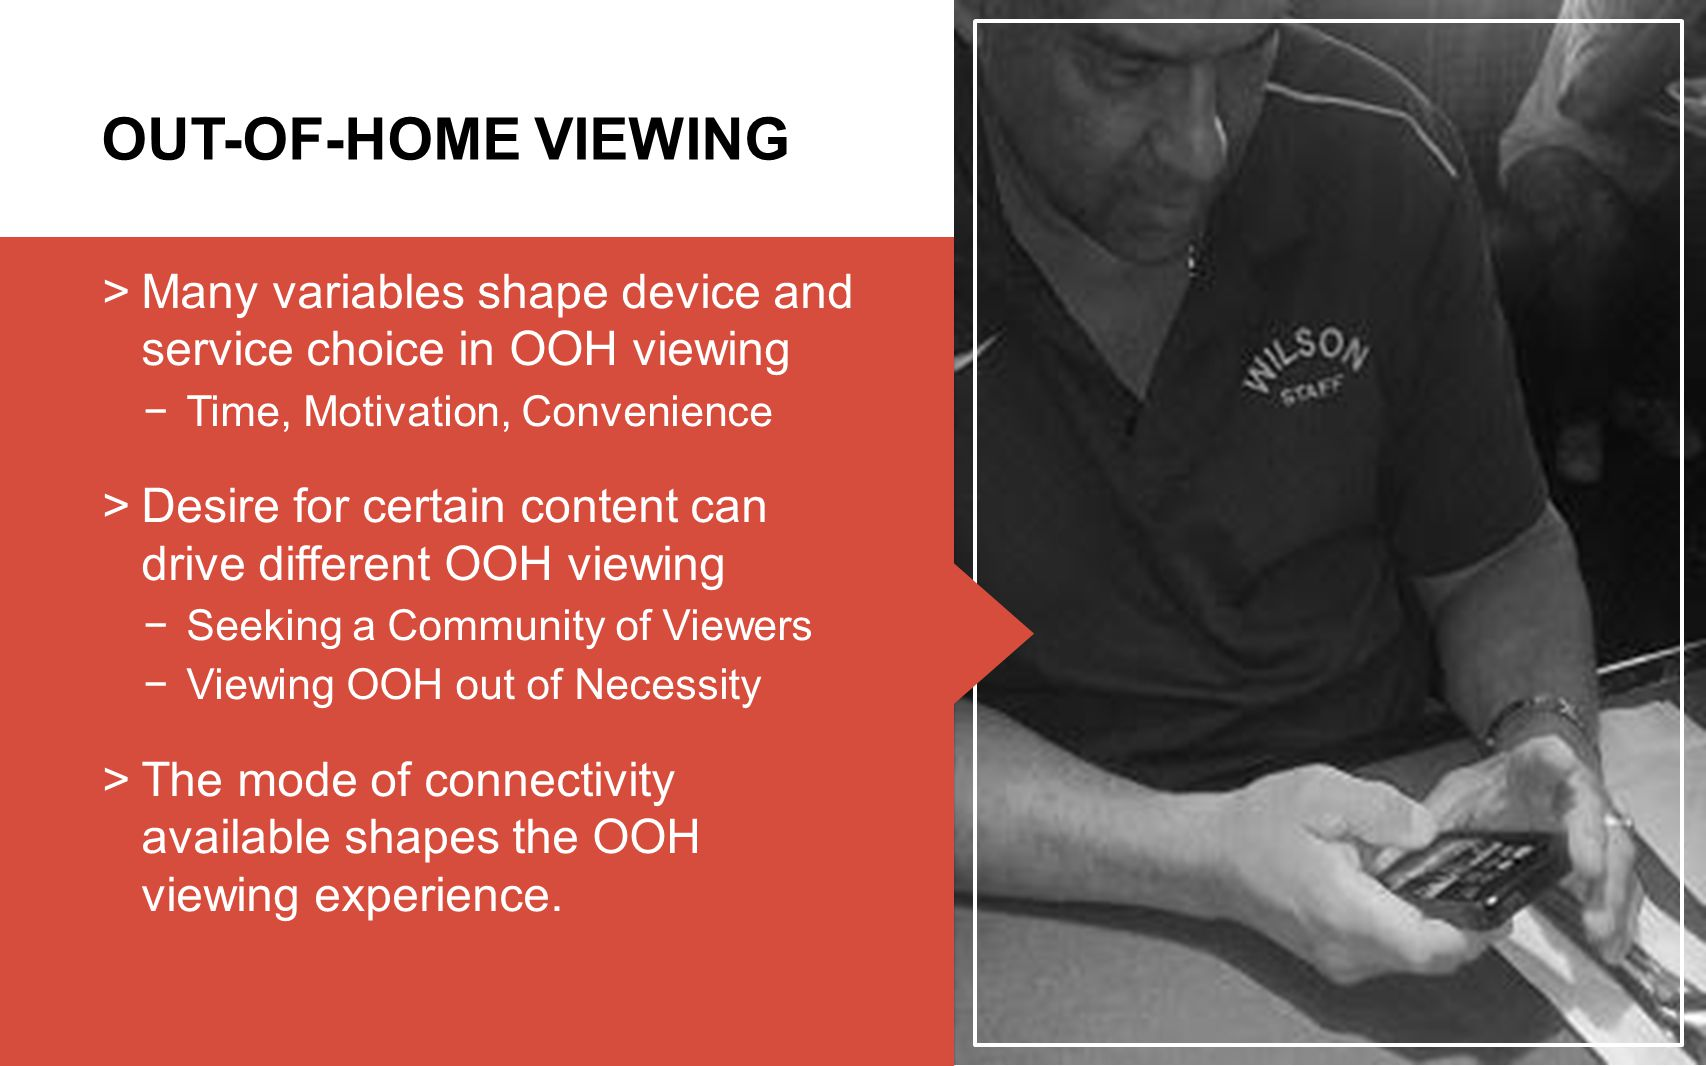 19 OUT-OF-HOME VIEWING  Many variables shape device and service choice in OOH viewing −Time, Motivation, Convenience  Desire for certain content can drive different OOH viewing −Seeking a Community of Viewers −Viewing OOH out of Necessity  The mode of connectivity available shapes the OOH viewing experience.